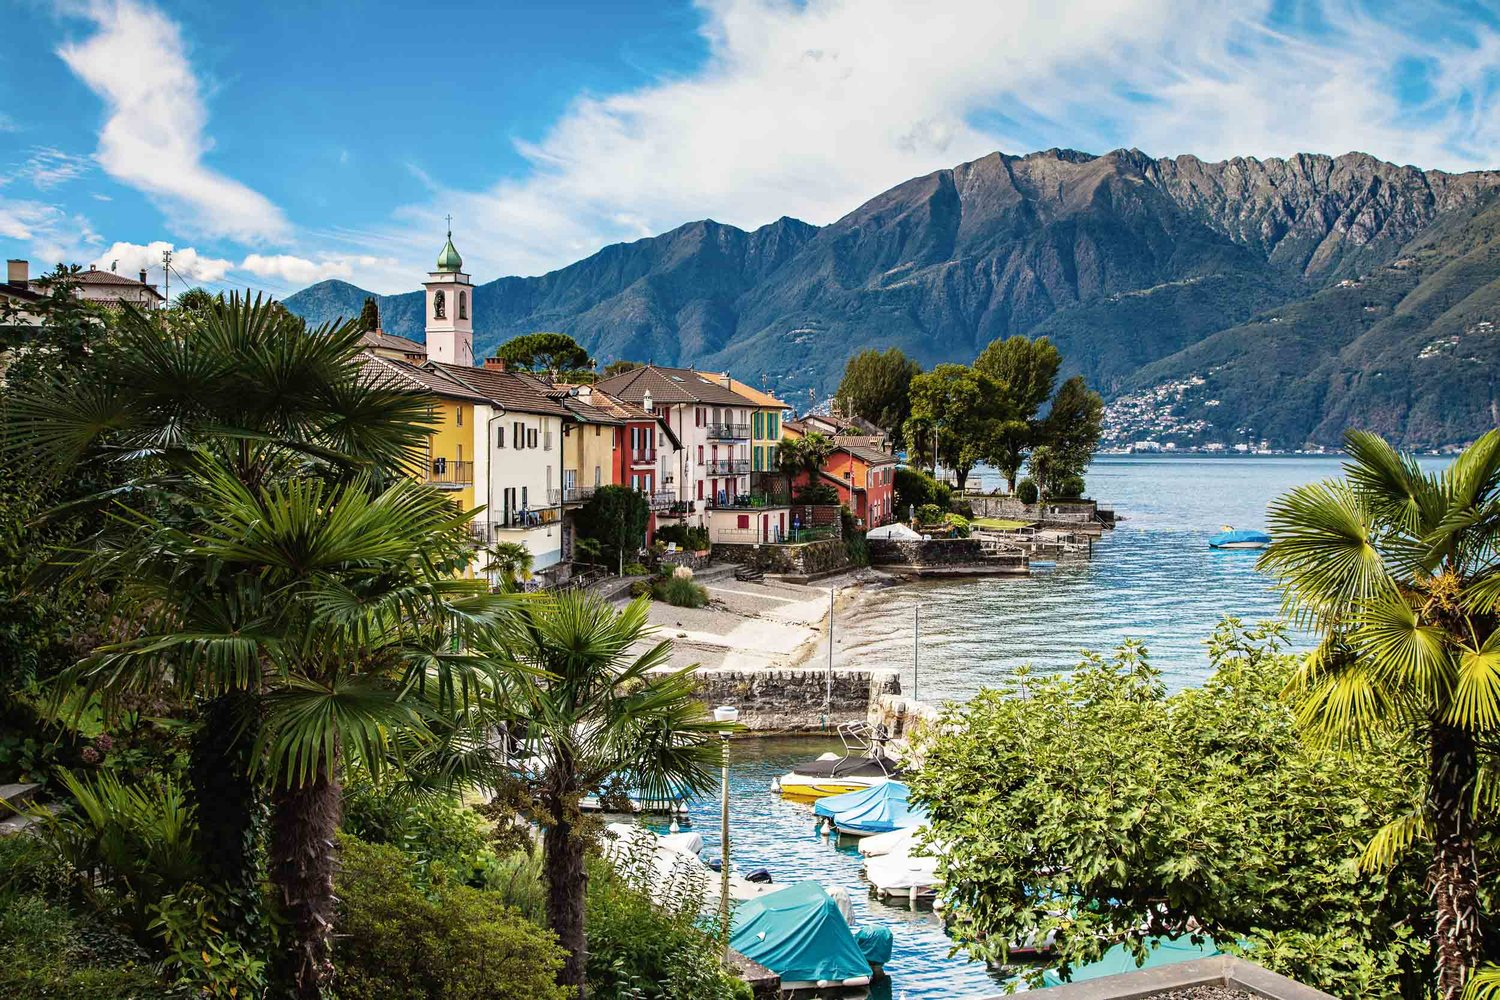 Small harbor with colorful row of houses on Lake Maggiore, Gerra (Gambarogno). Copyright by: Switzerland Tourism